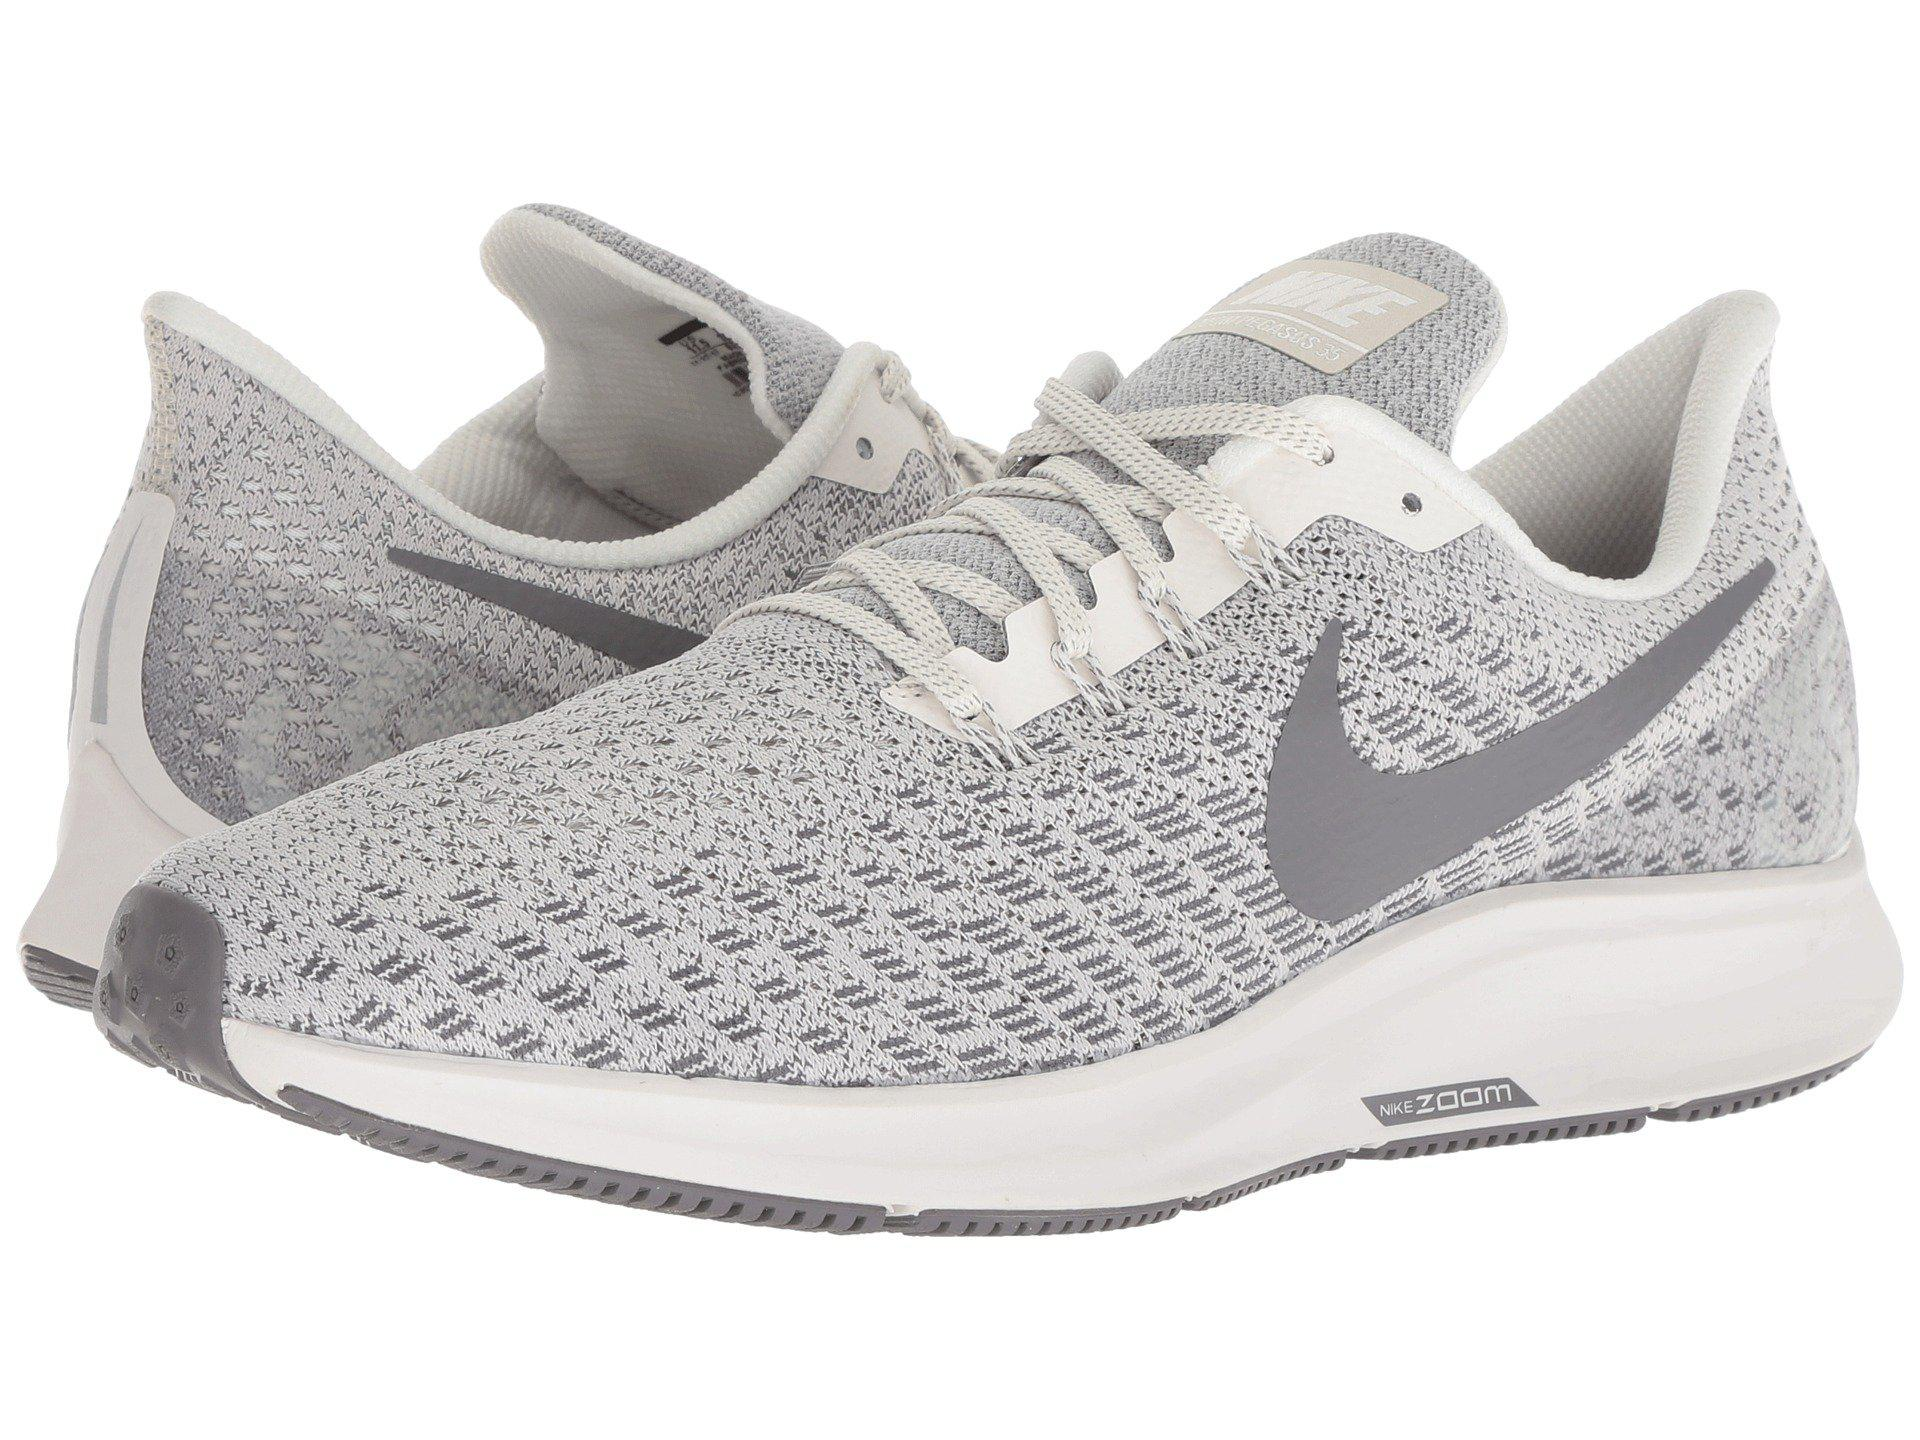 2db6c6fe9f09e nike-PhantomGunsmokeSummit-White-Air-Zoom -Pegasus-35-light-Silverdark-Stuccotwilight-Marsh-Mens-Running-Shoes.jpeg